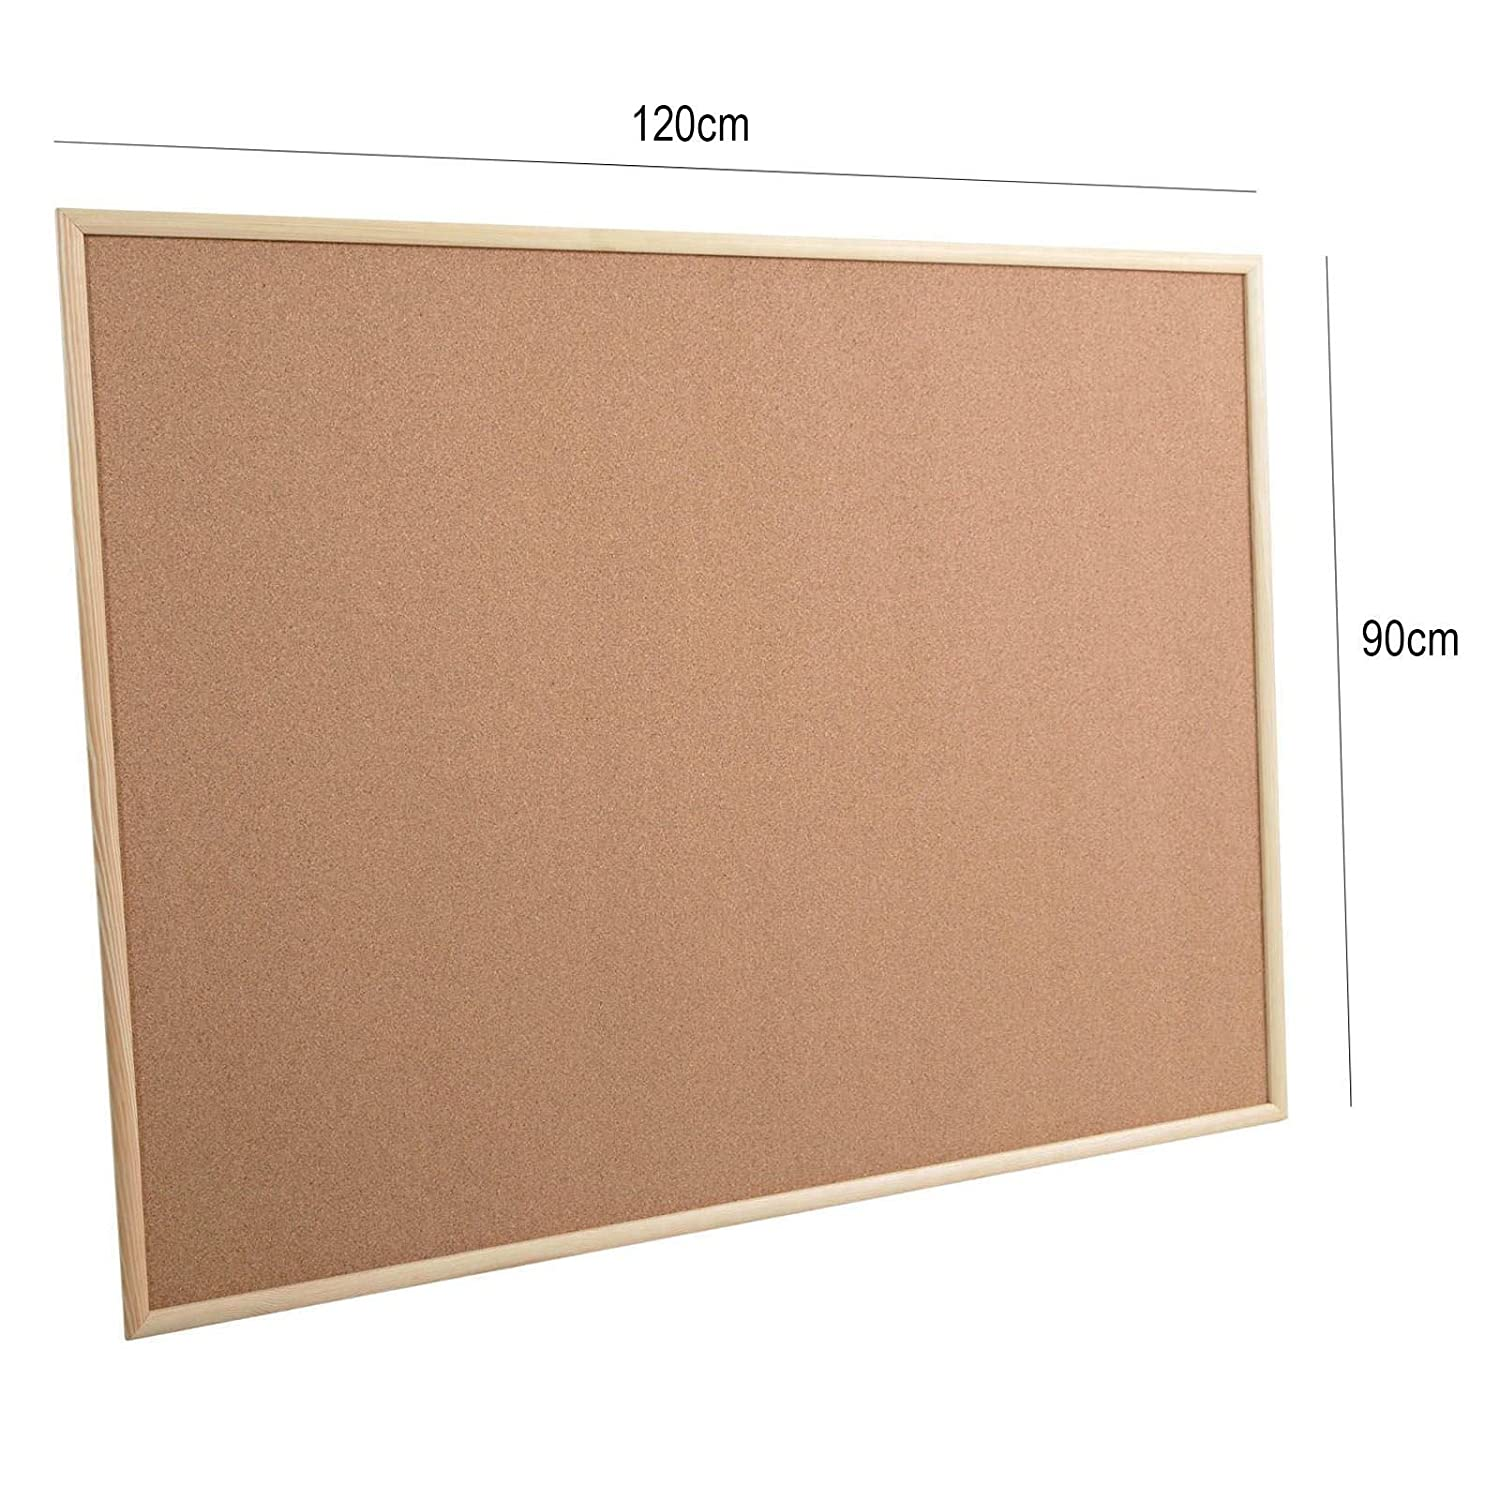 1200x900mm Large Rounded Cork Notice Pin Message Board Memo Office School Wood Frame Pinboard